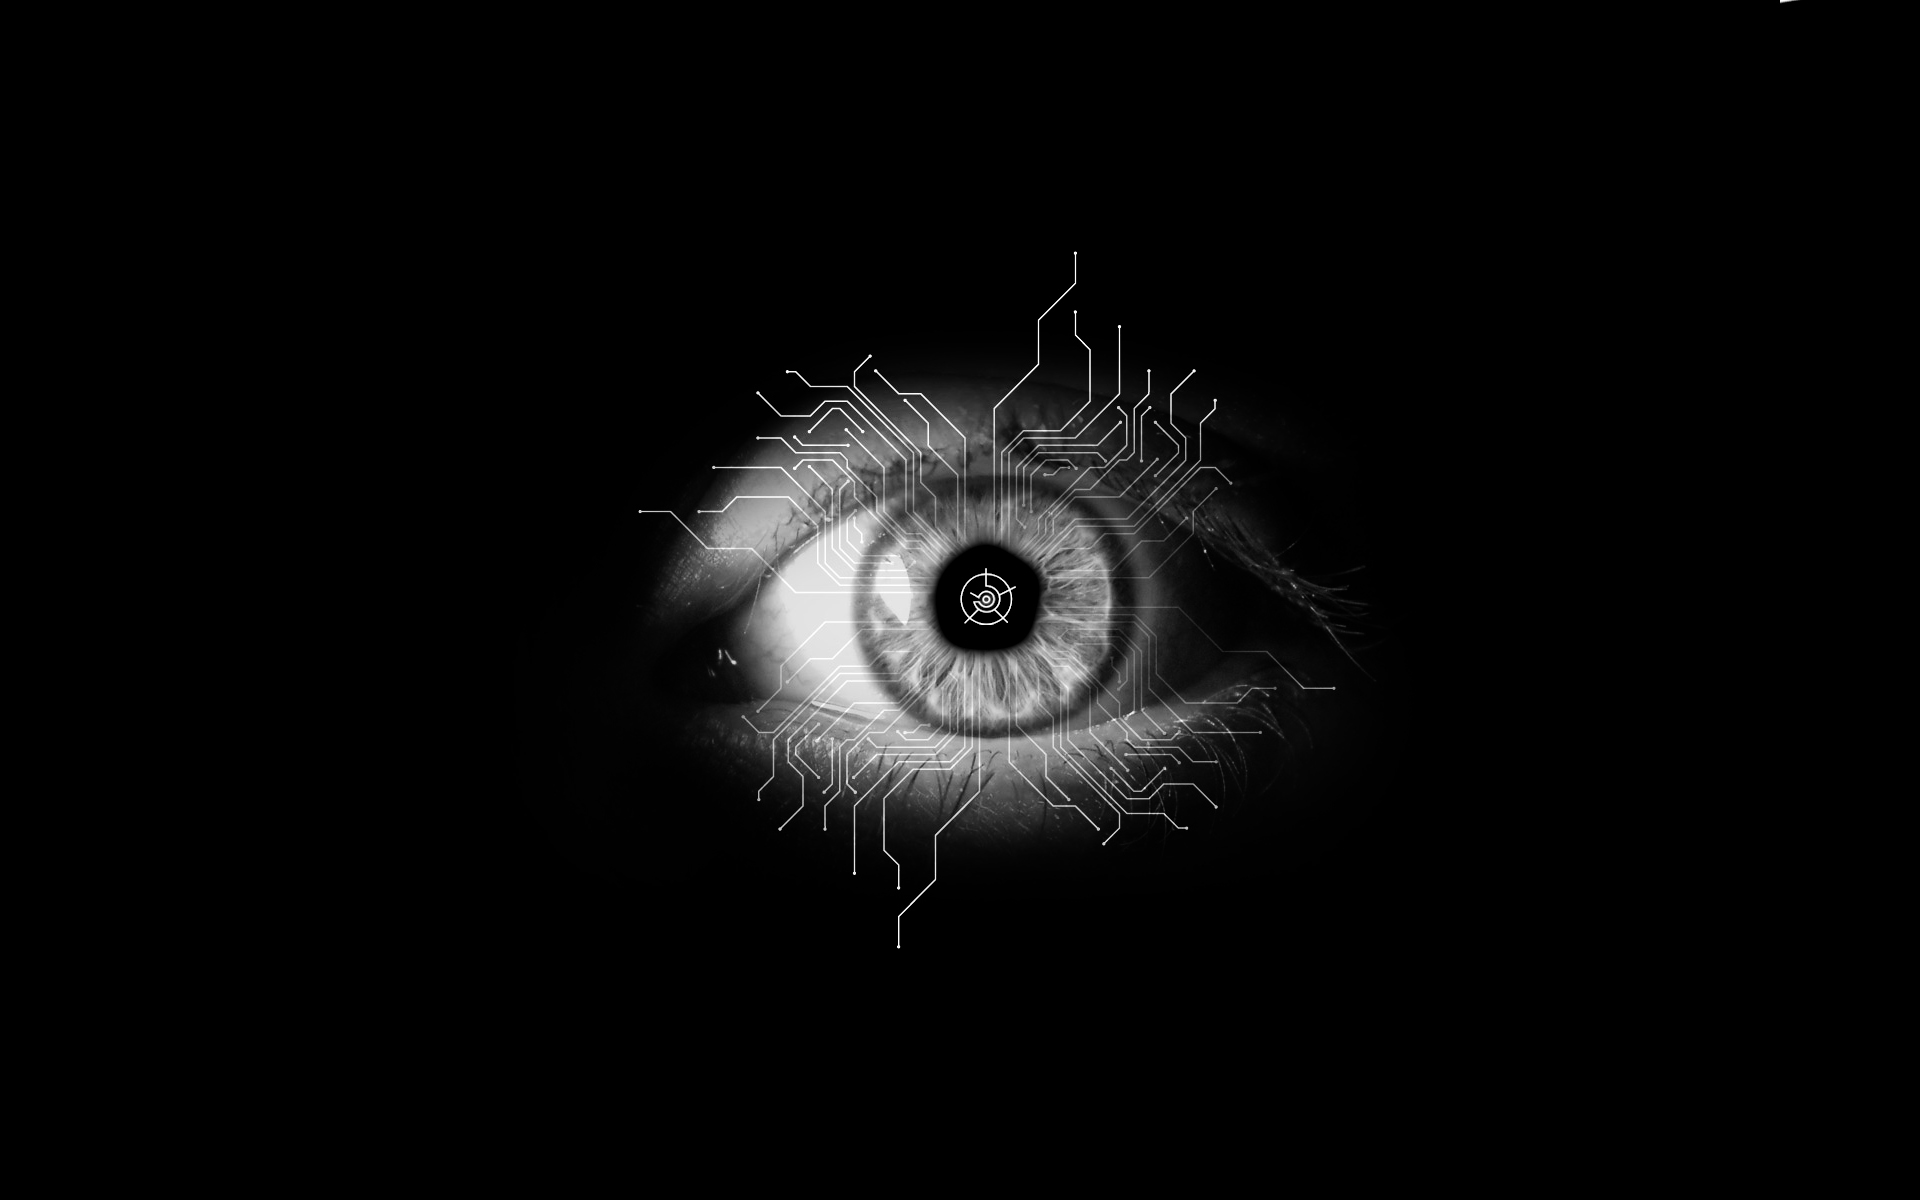 the eye wallpaper